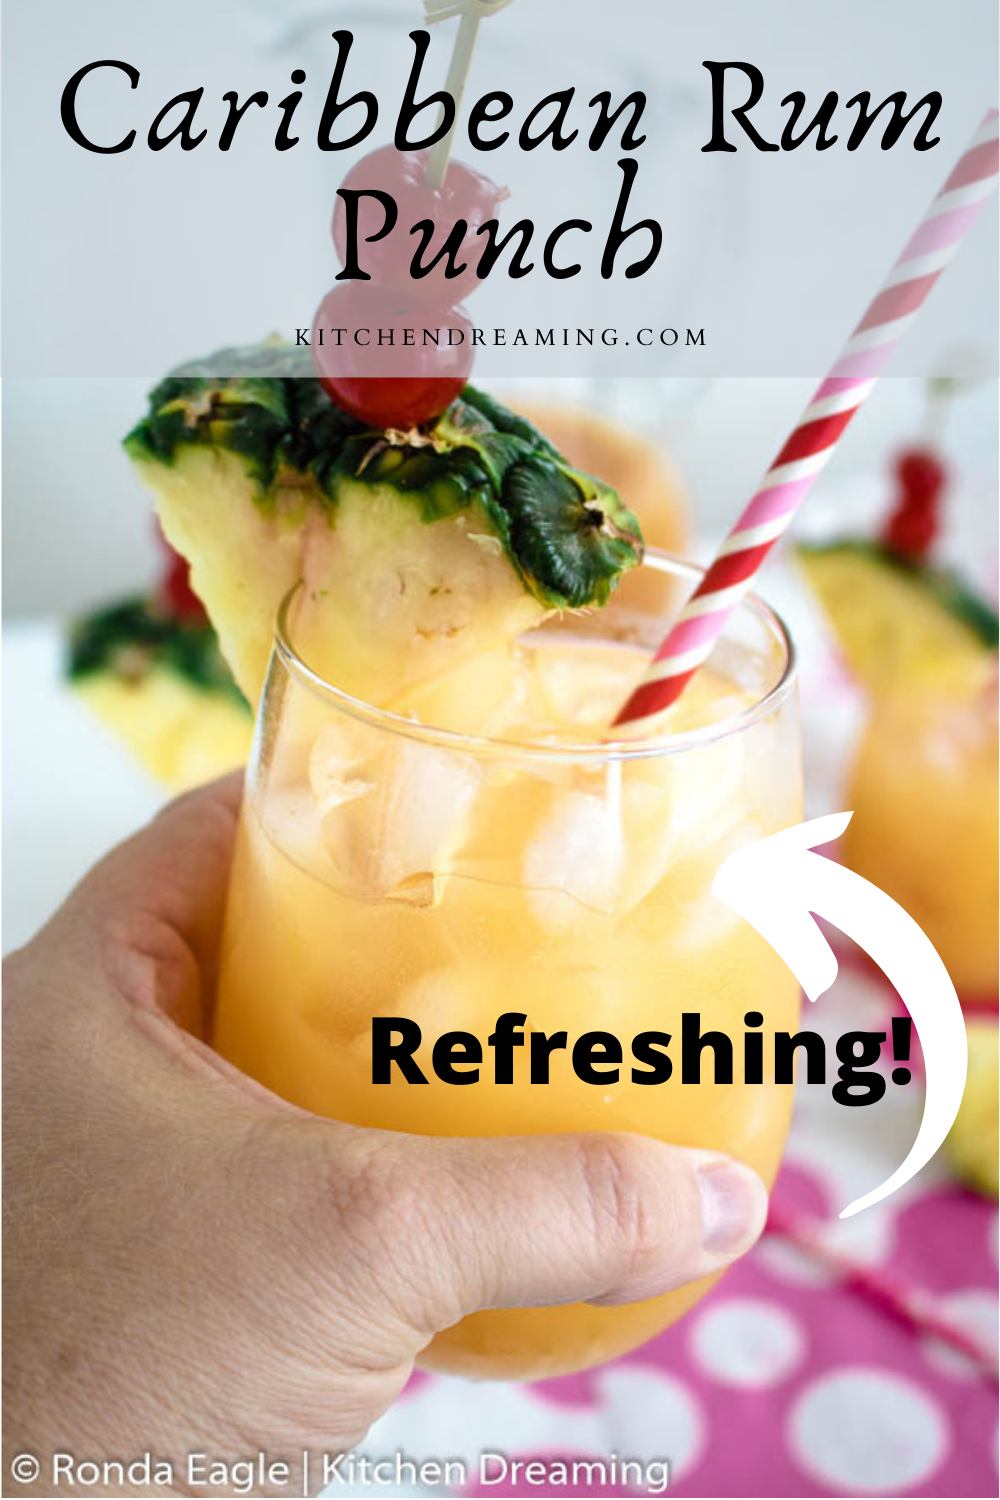 A pinnable image for Pinterest of a class of Caribbean Rum Punch.